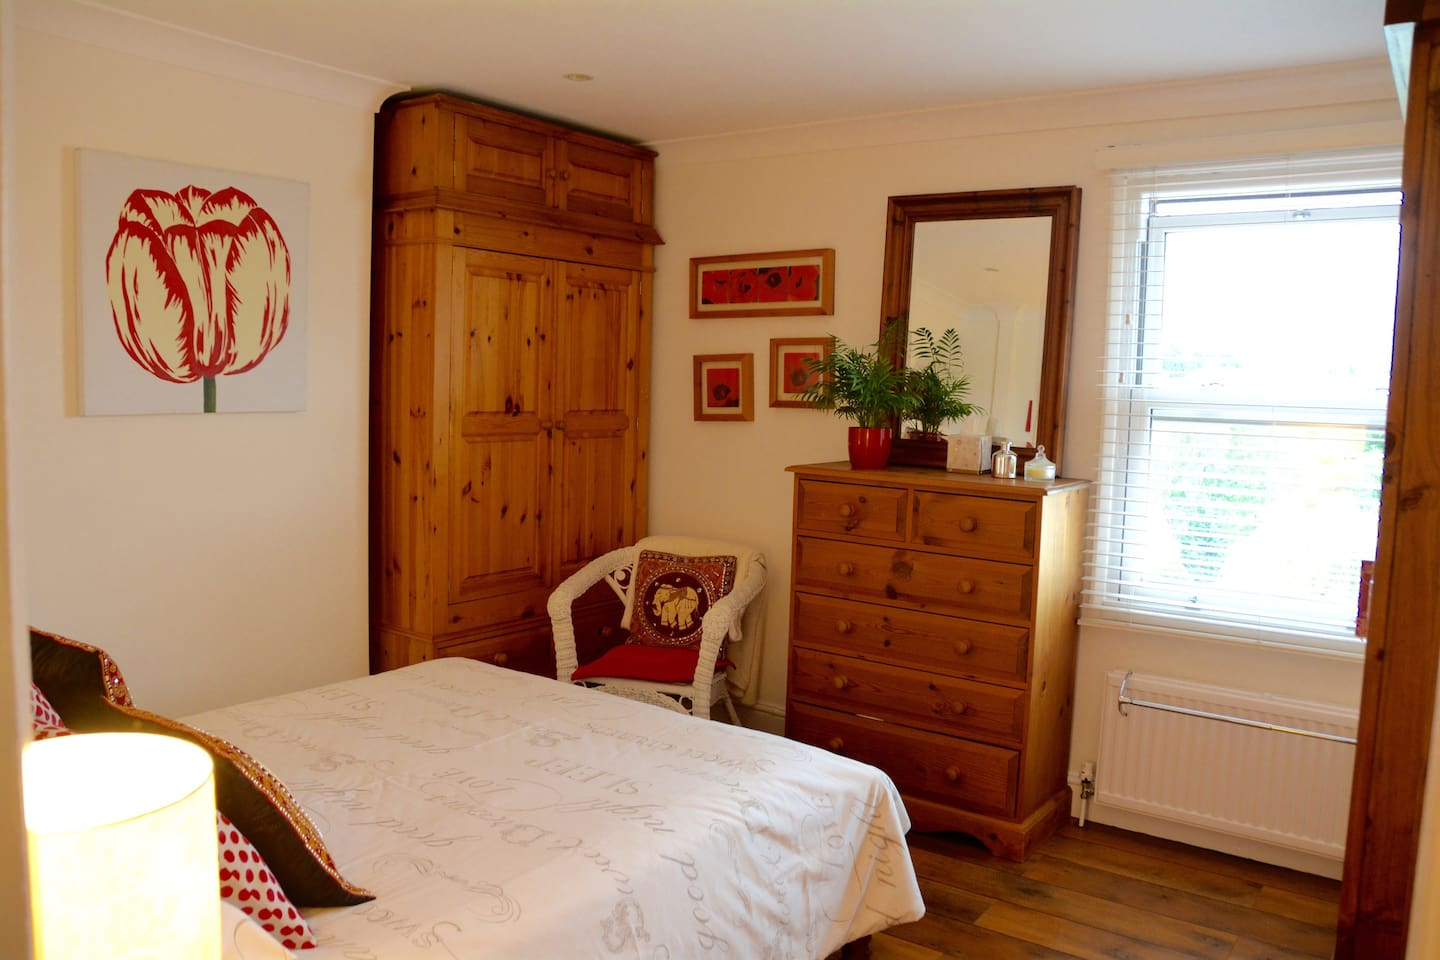 Stansted Airport, Stansted - Double Room